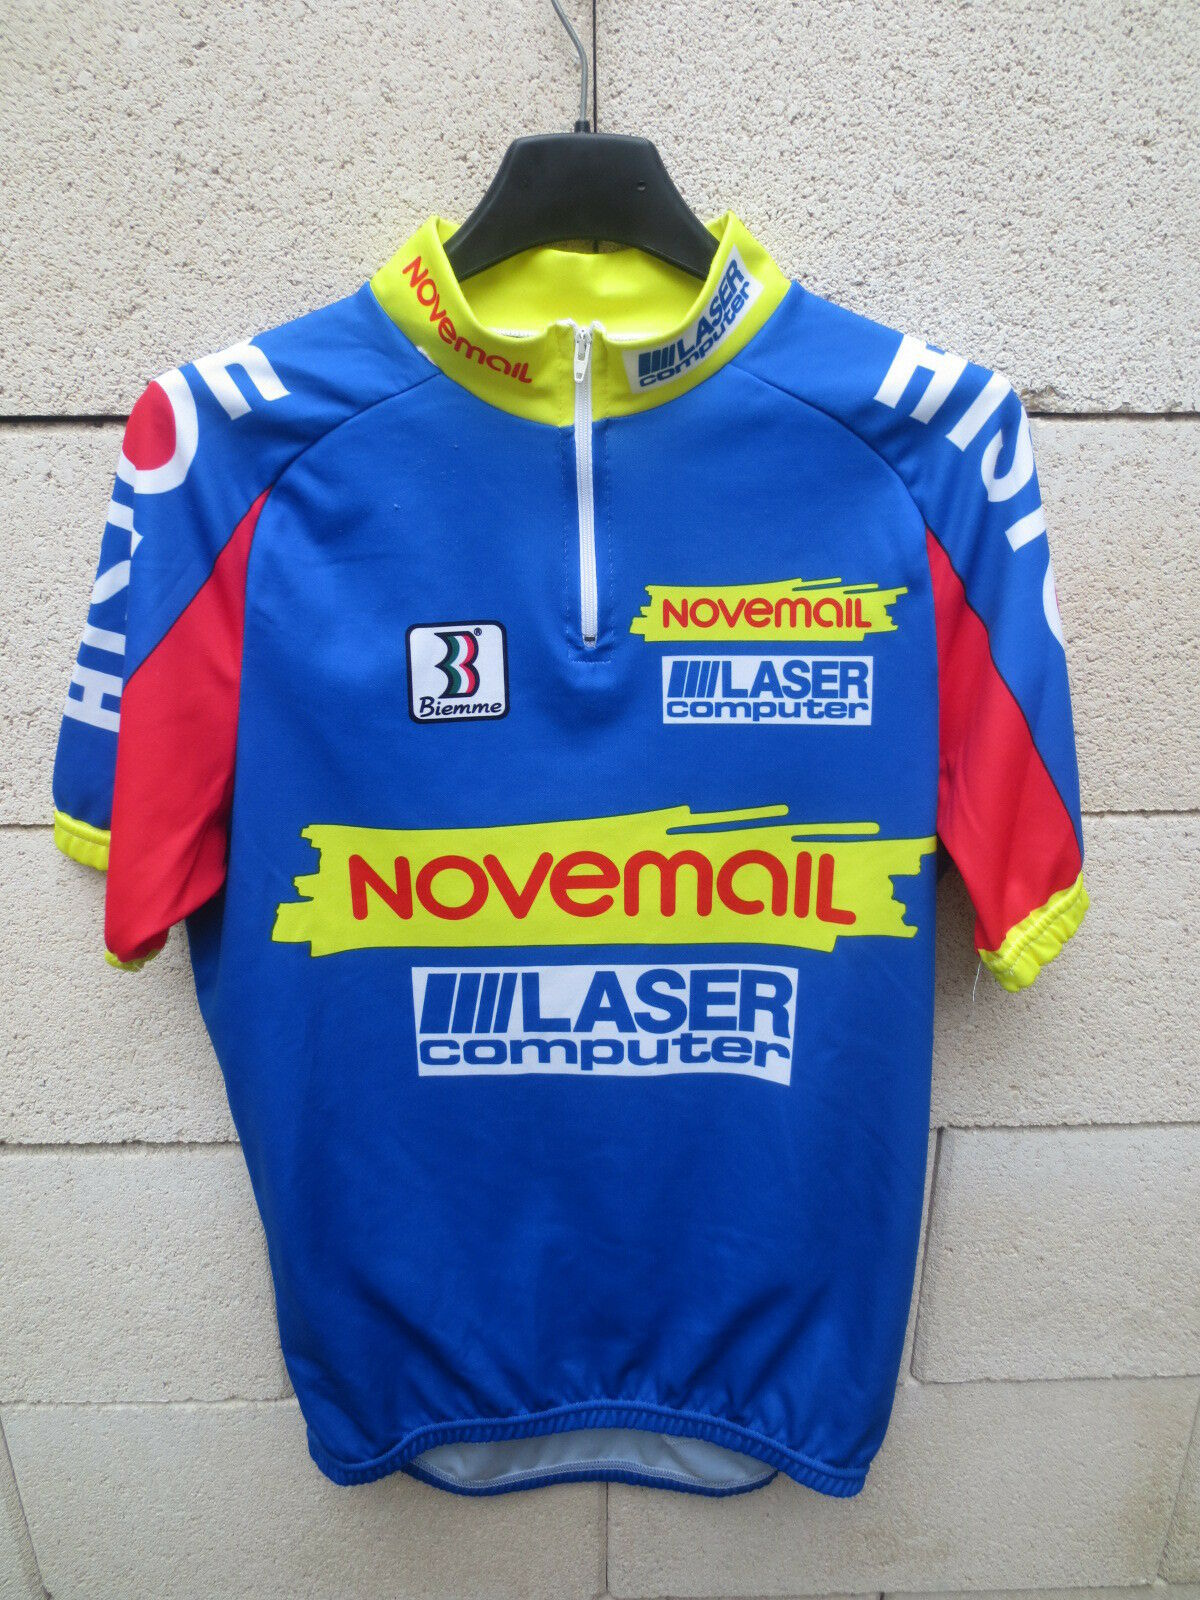 Maillot  cyclist histor novemail laser computer tower france 1993 shirt maglia l  is discounted